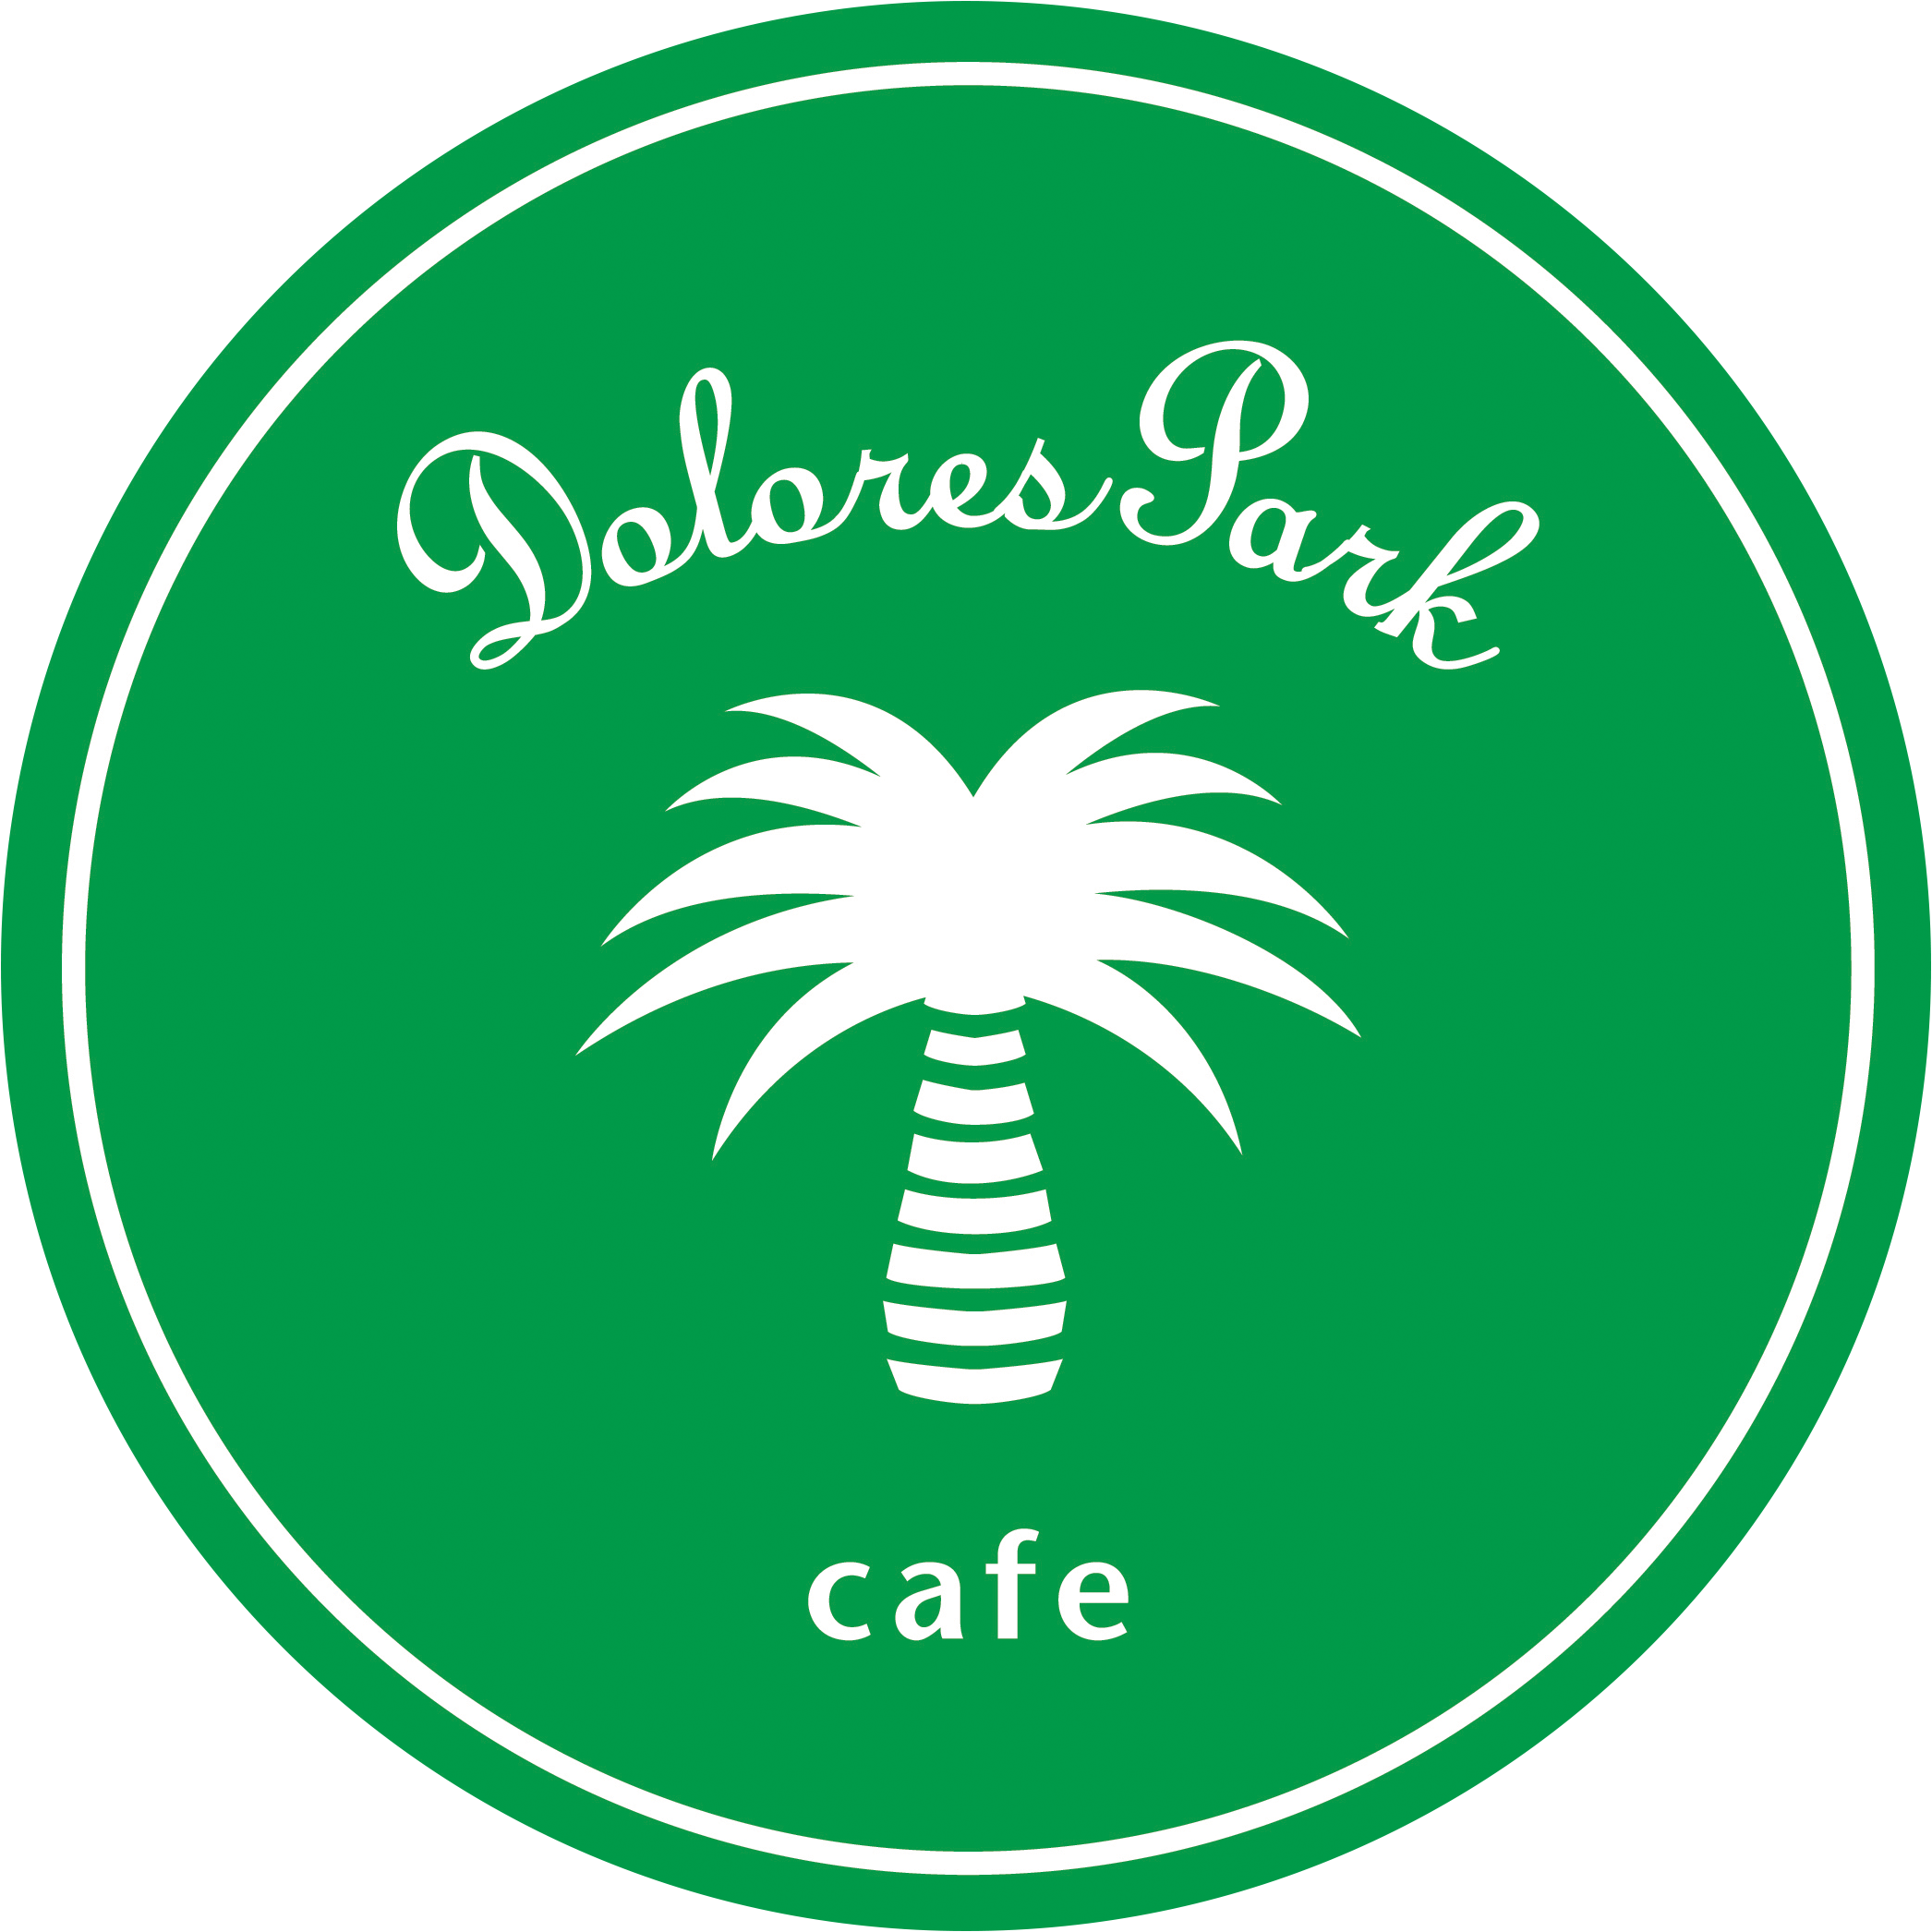 Dolores Park Cafe   501 Dolores St.   San Francisco, CA 94110 415.621.2936